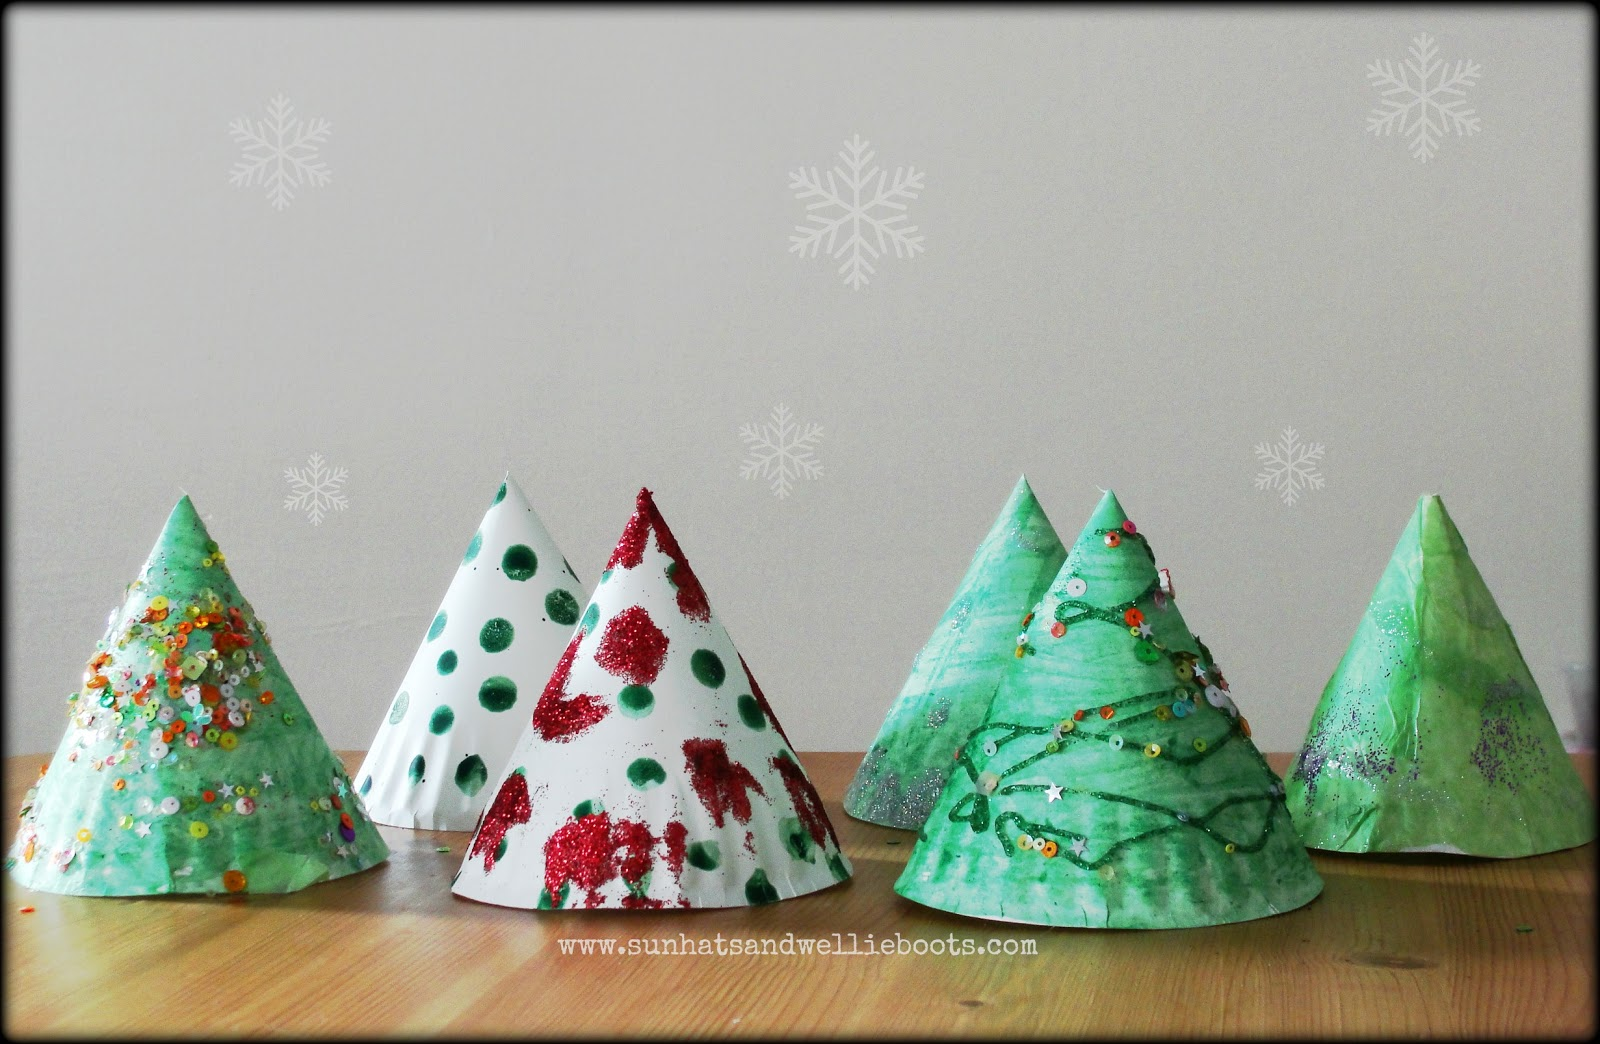 Sun Hats Amp Wellie Boots Elf Trees Paper Plate Amp Twig Tree